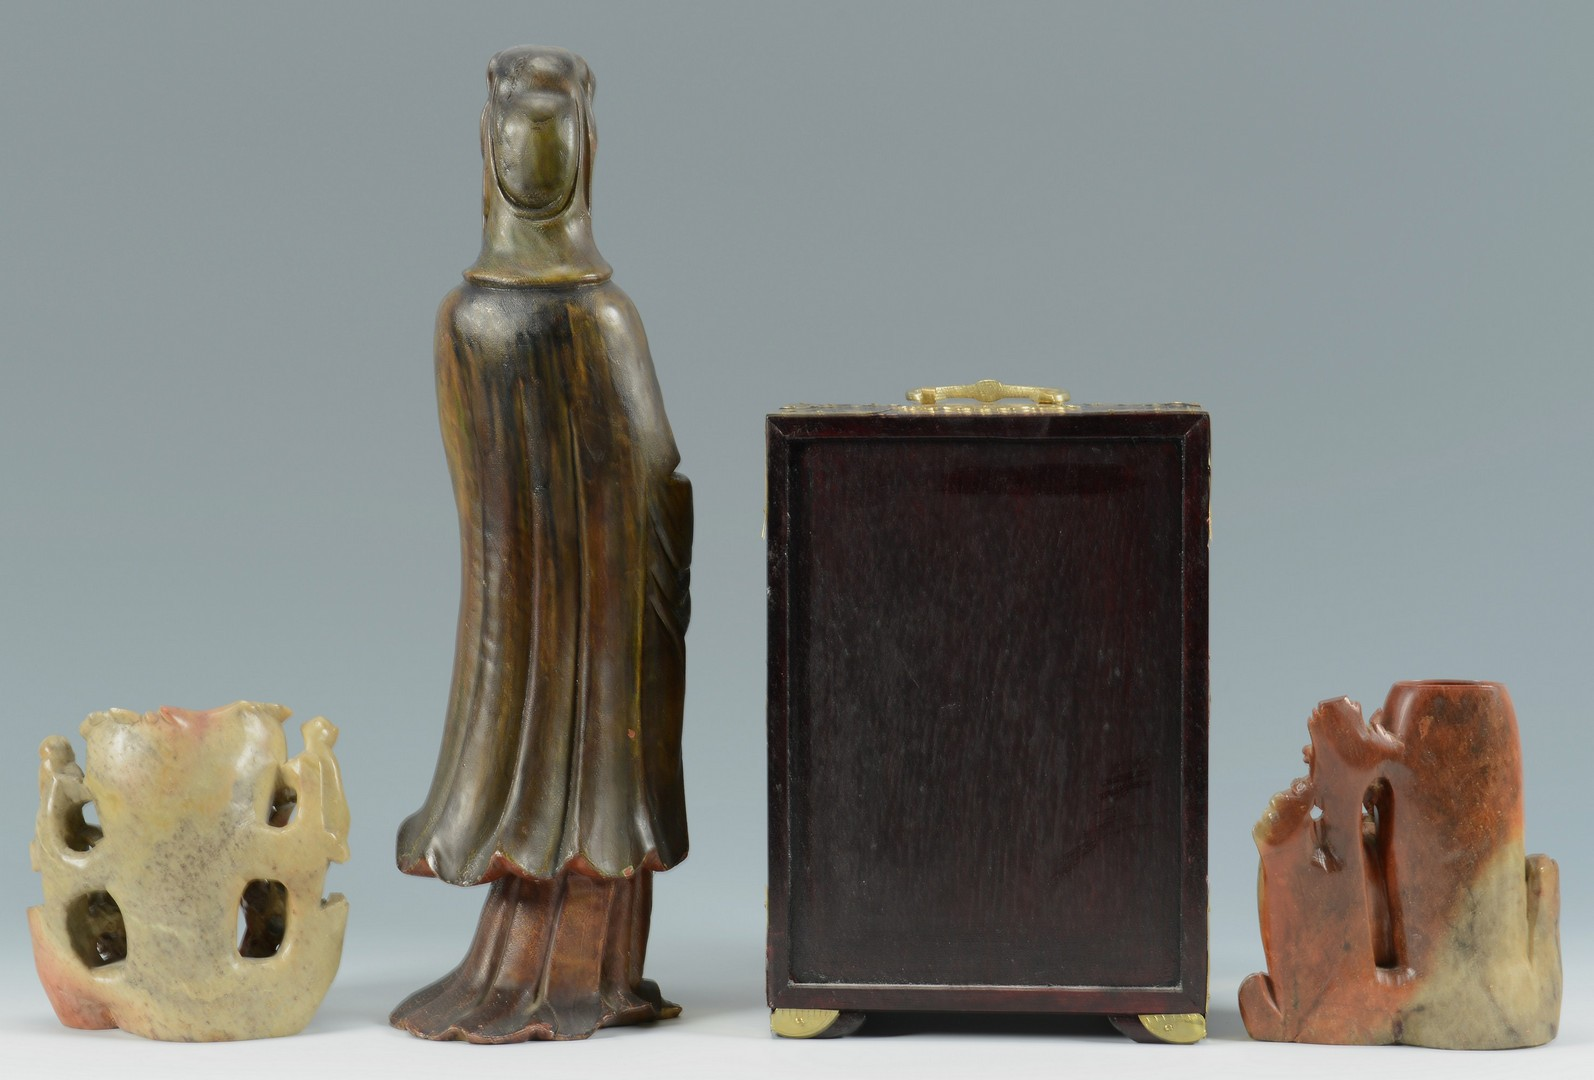 Lot 3383252: 4 Chinese hardstone and wooden items